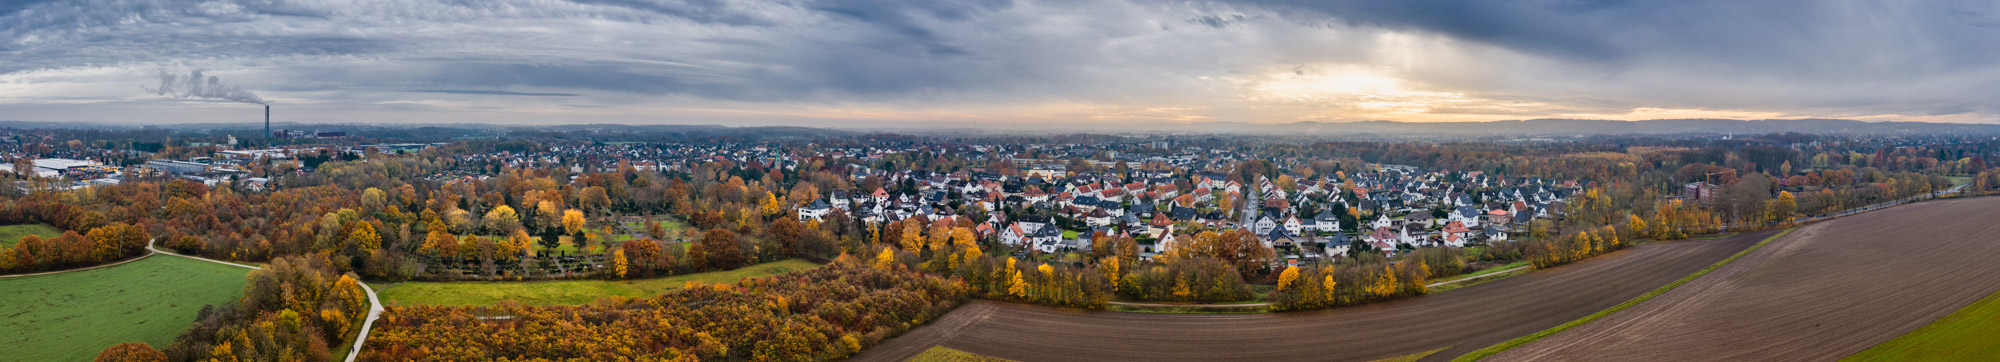 Bielefeld district Heepen in November 2019 (Germany).